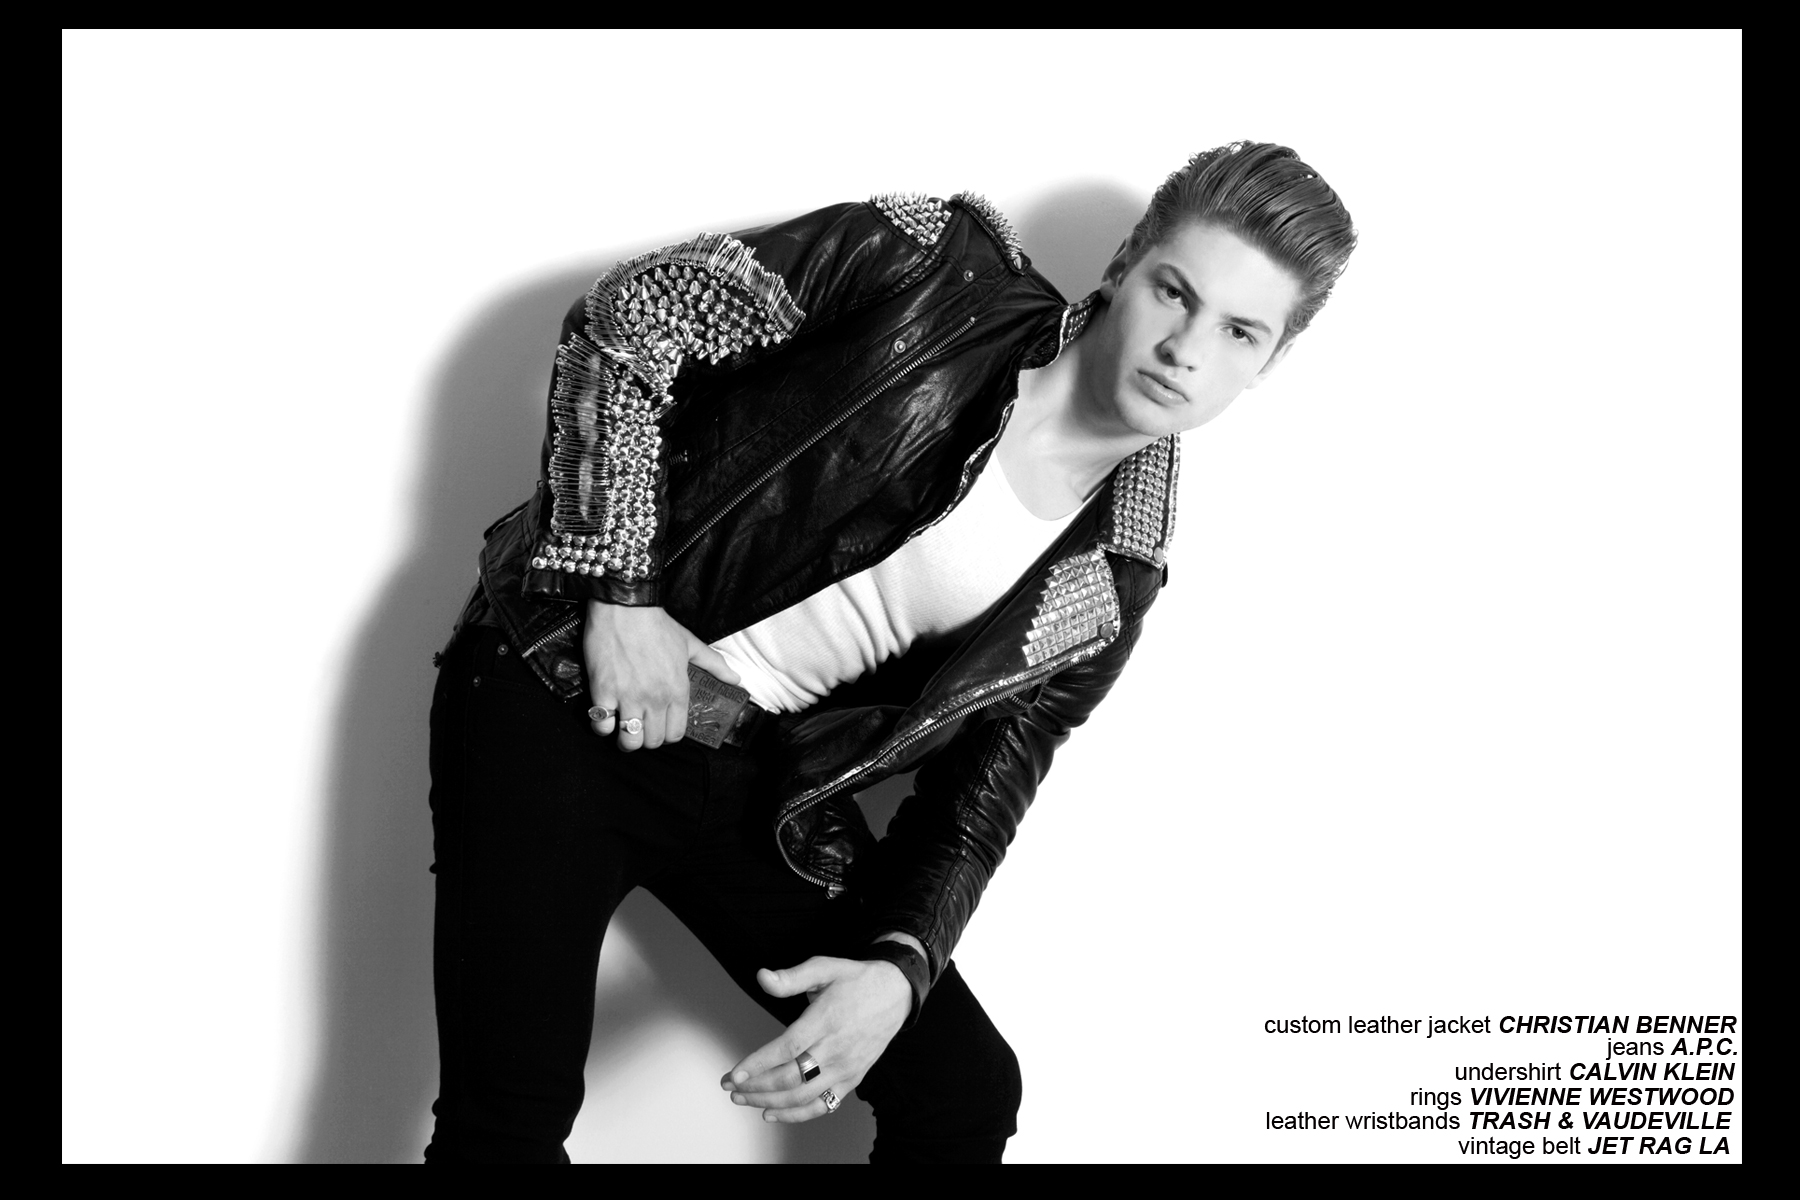 Model Clancy Sigalet from Soul Artist Management, modeling Christian Benner for Ponyboy Magazine.